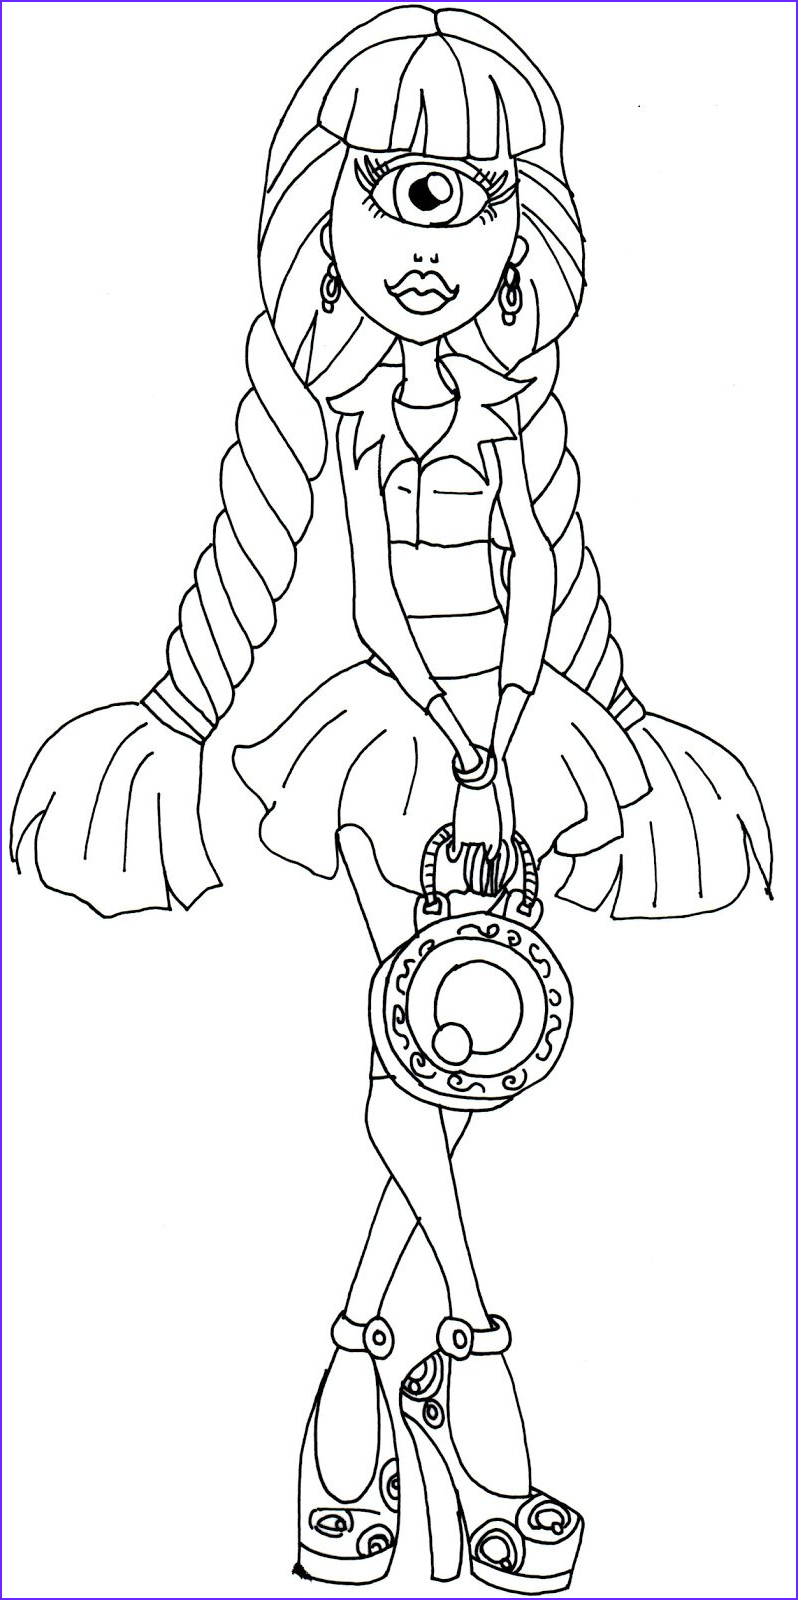 iris clops monster high coloring page